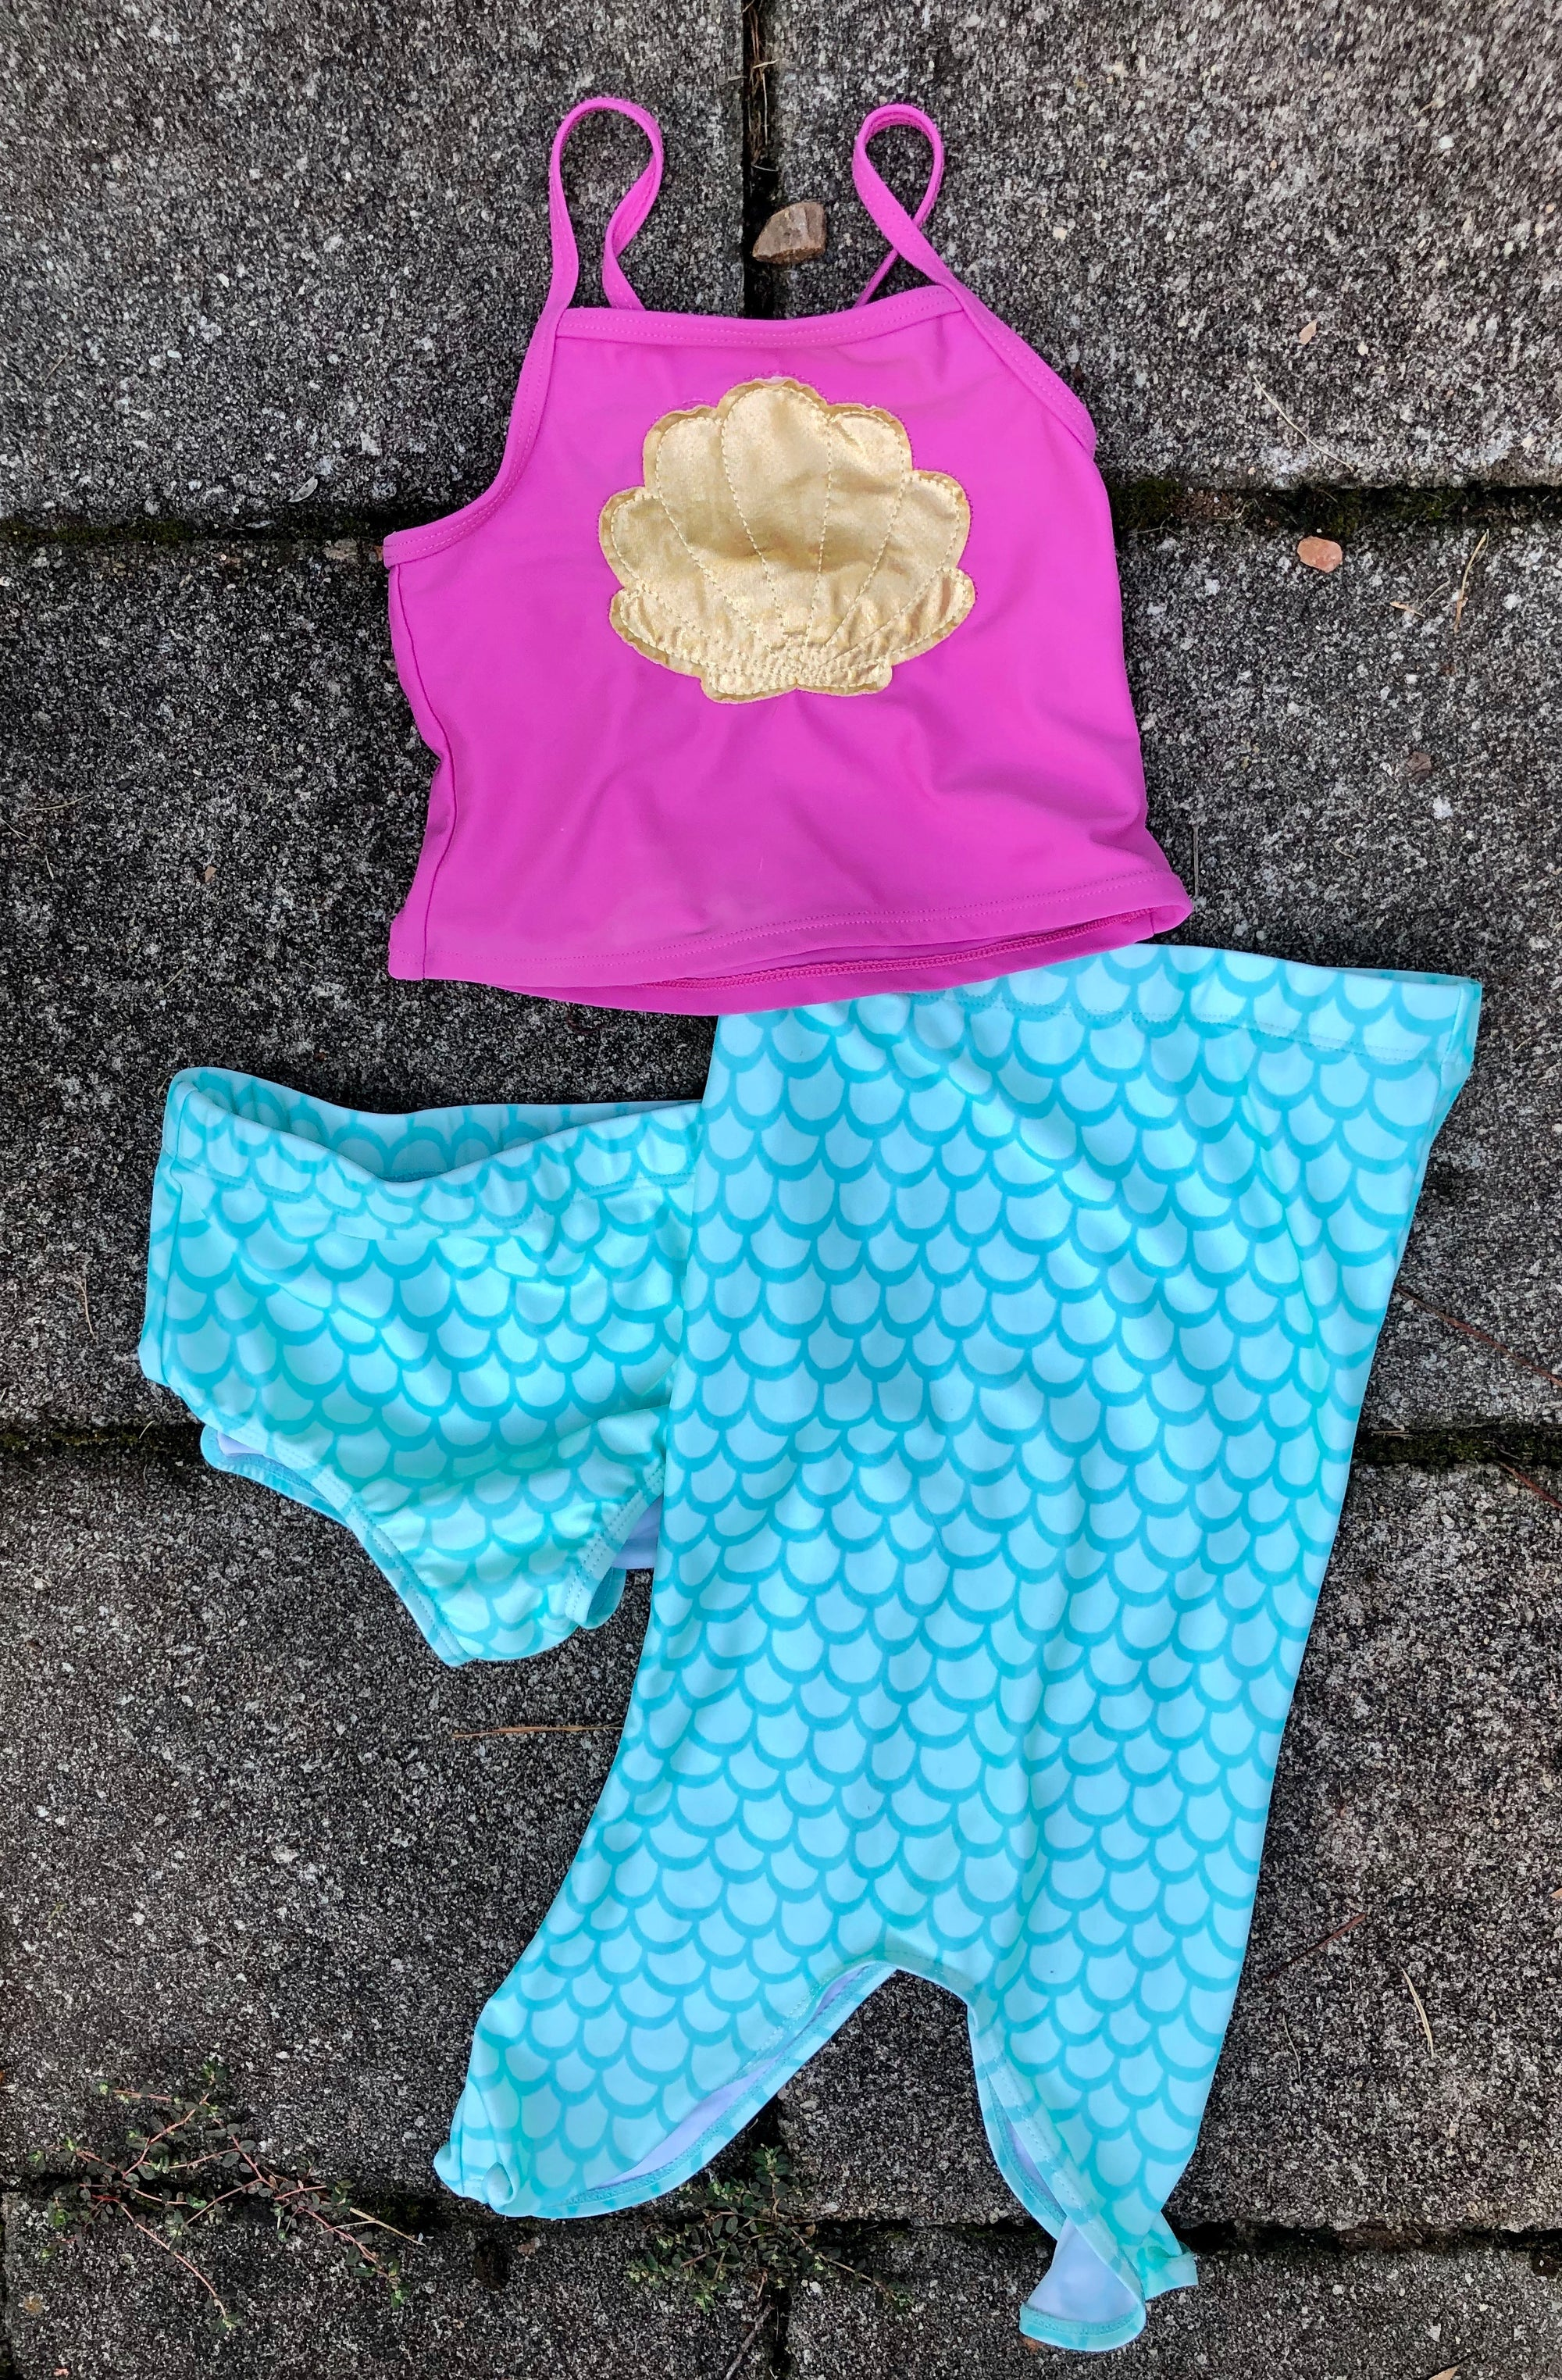 Resale 4T Flap Happy Mermaid Swimsuit - 3 piece